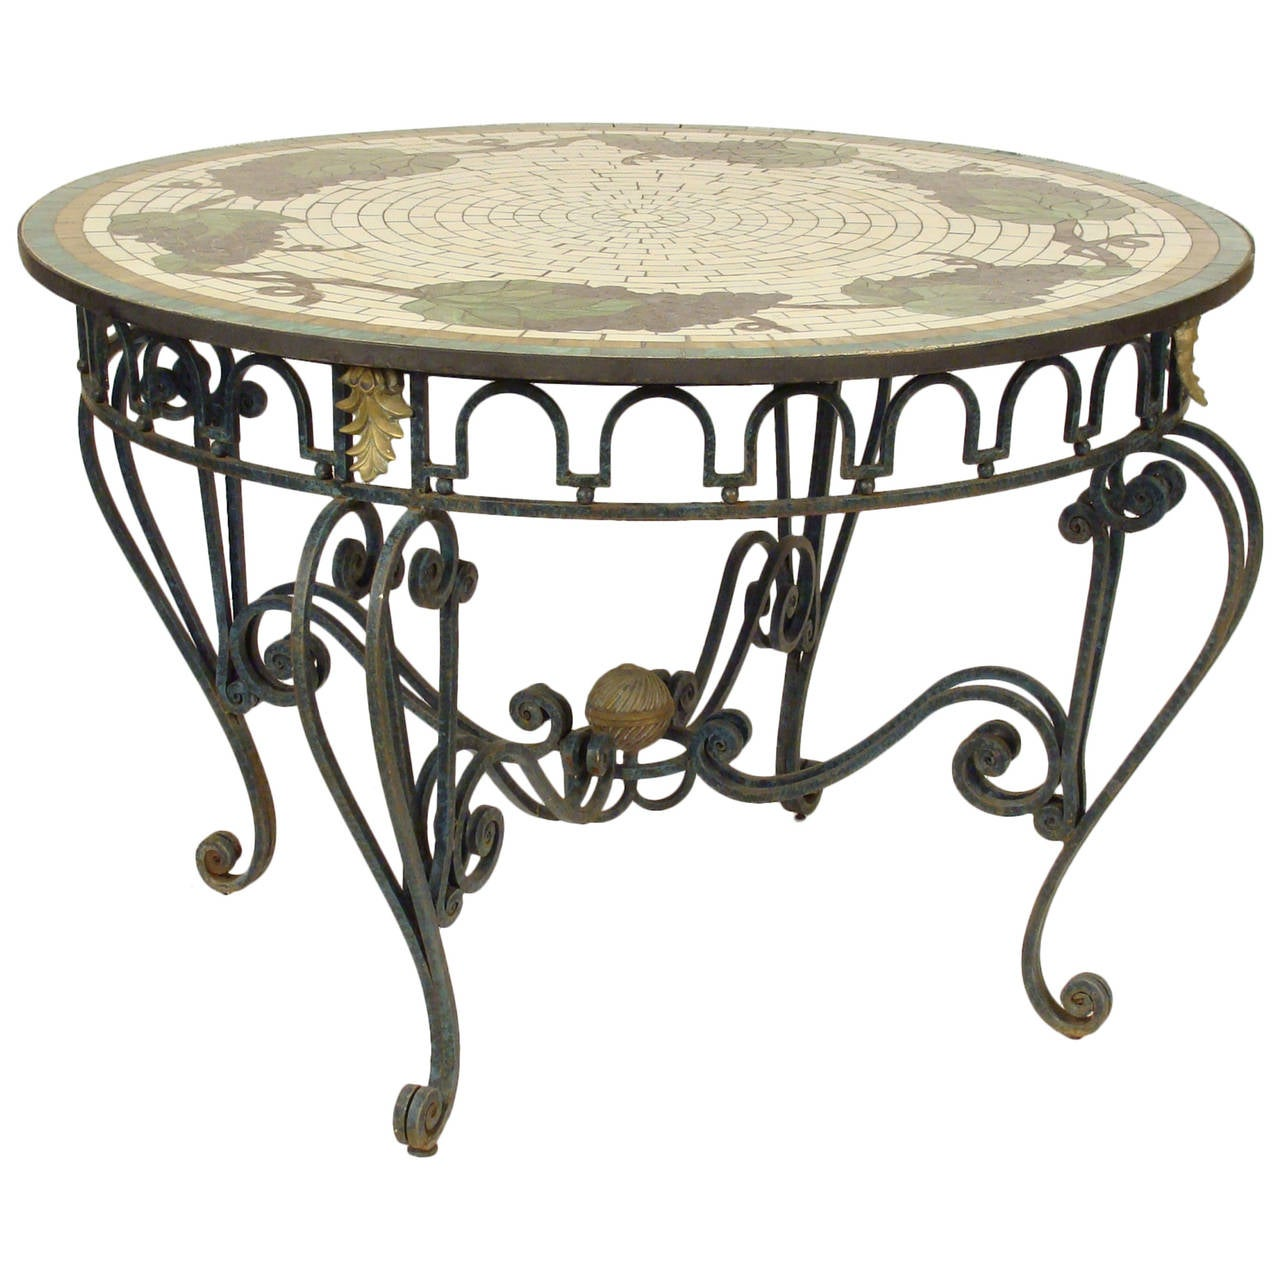 Center Table With Glass : Wrought Iron and Leaded Glass Center Table For Sale at 1stdibs